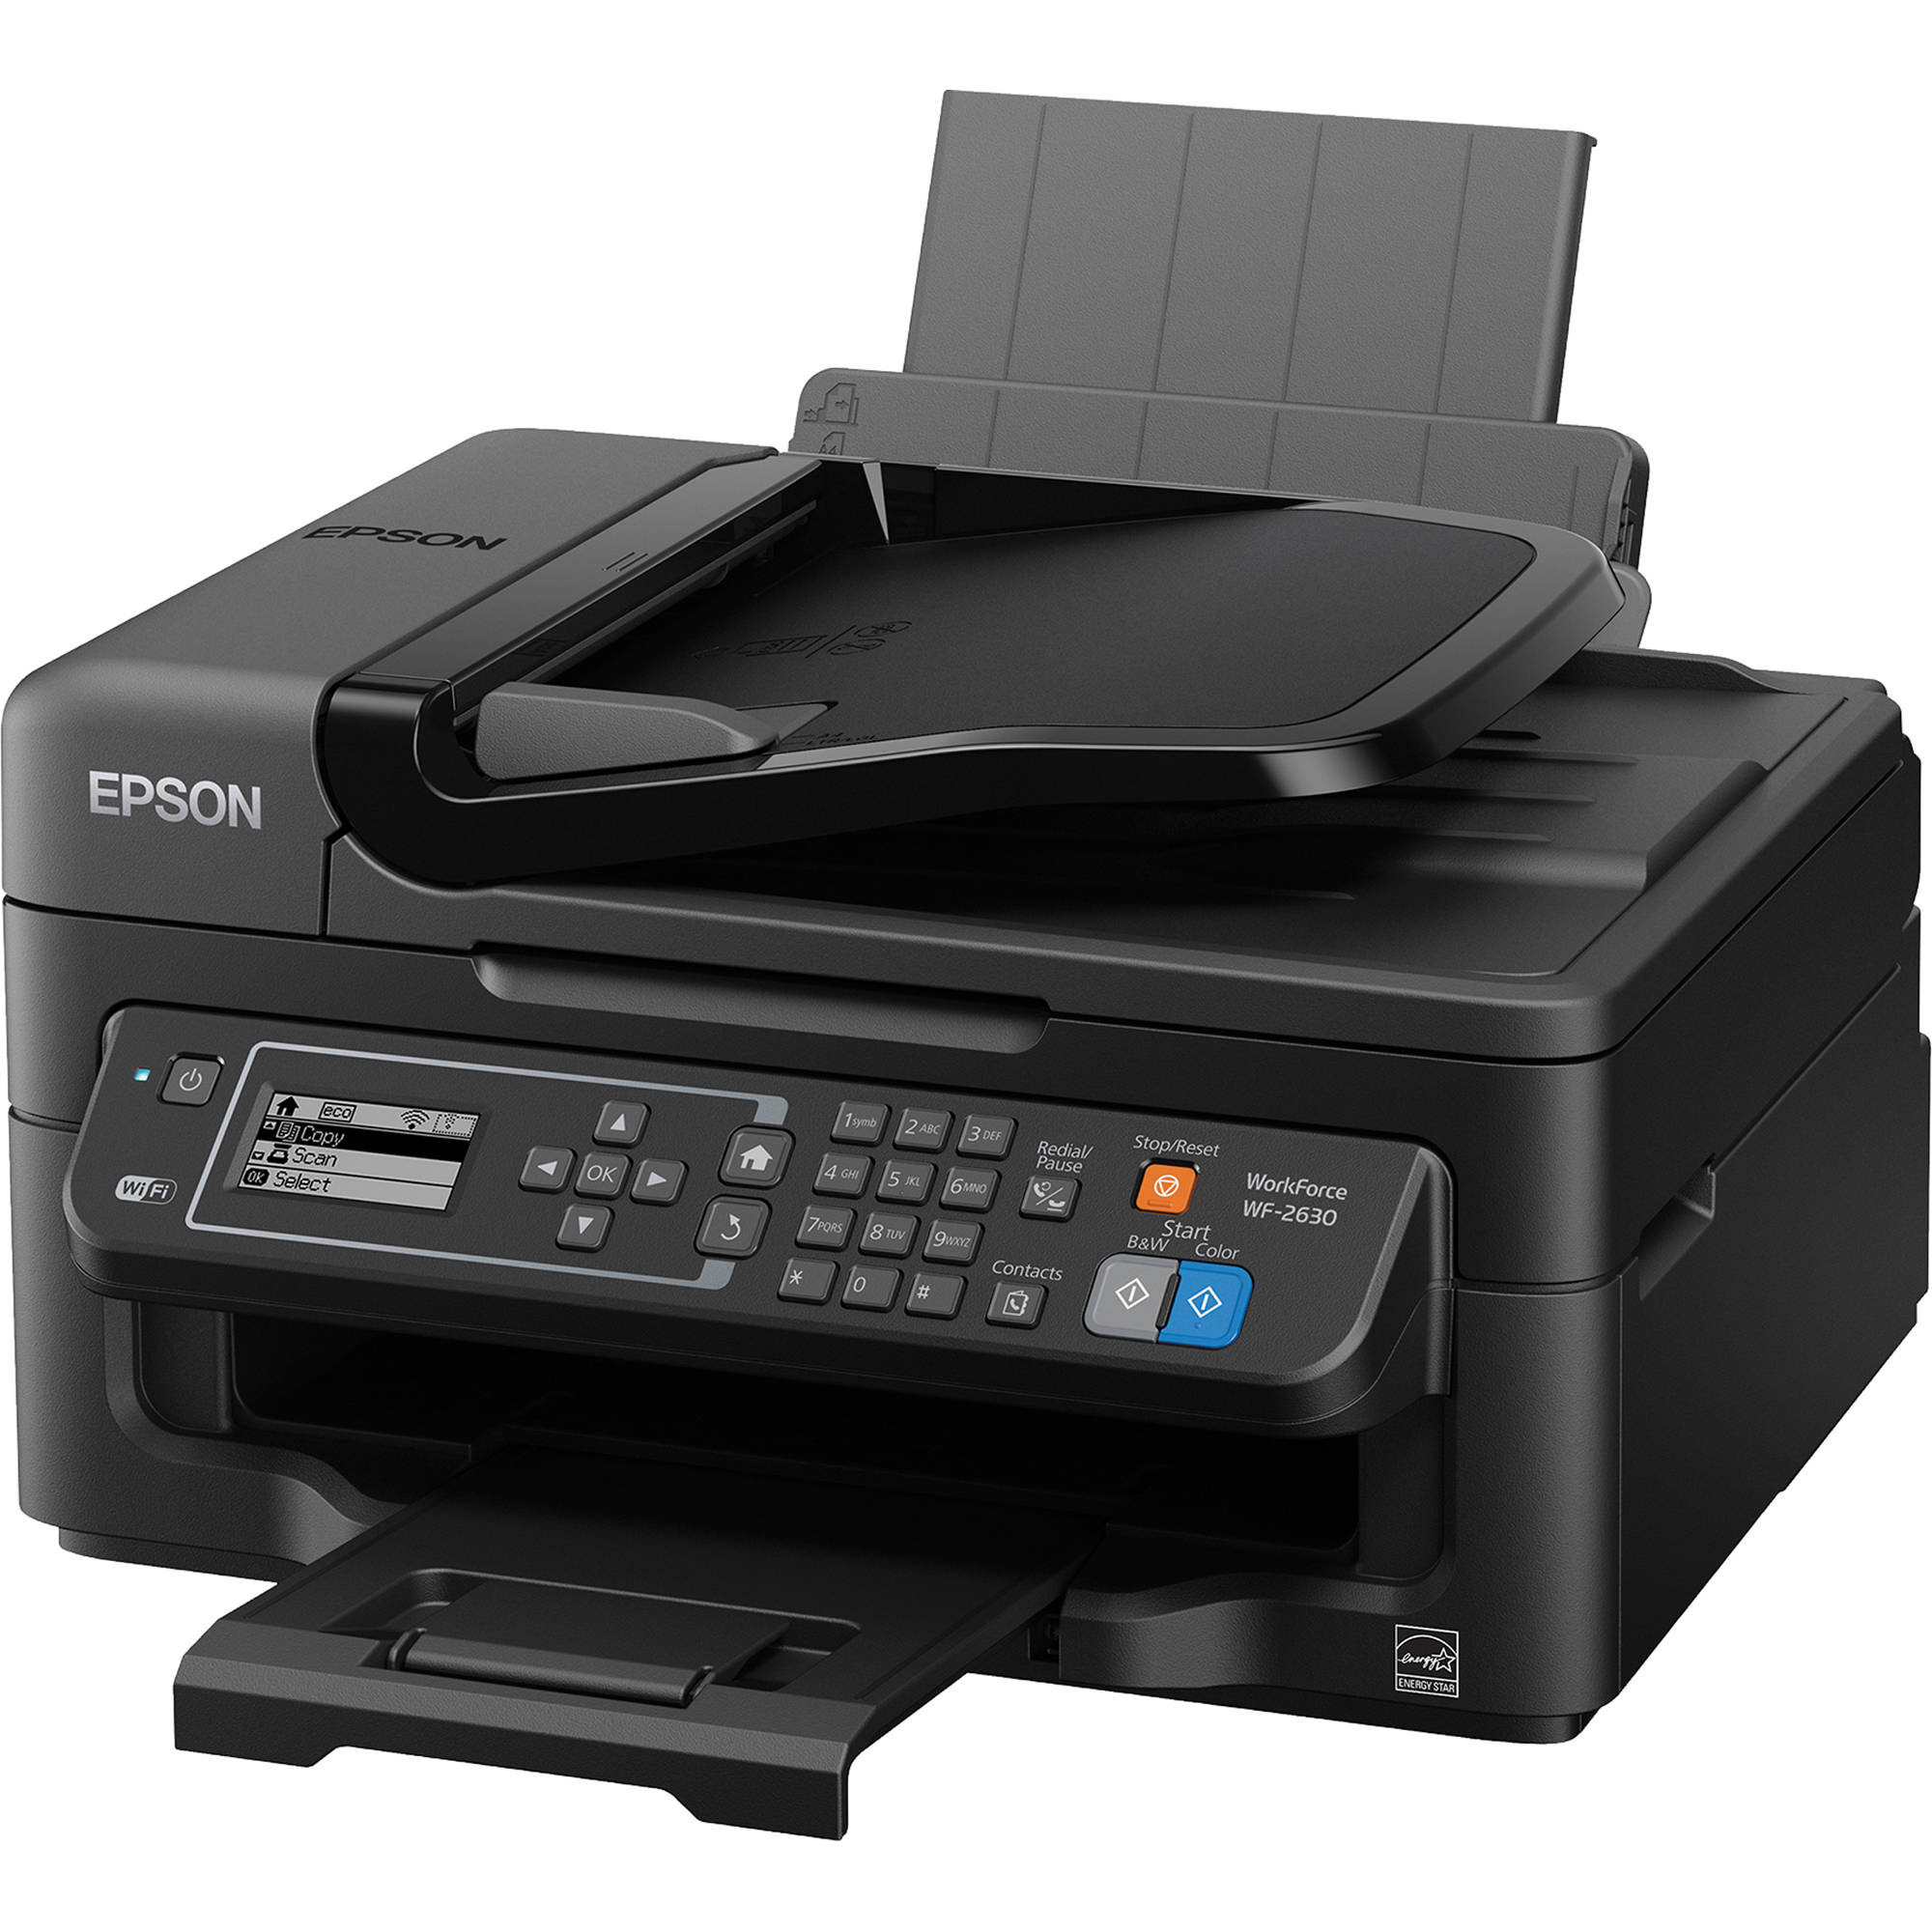 Epson WorkForce WF-2630 All-In-One Inkjet Printer